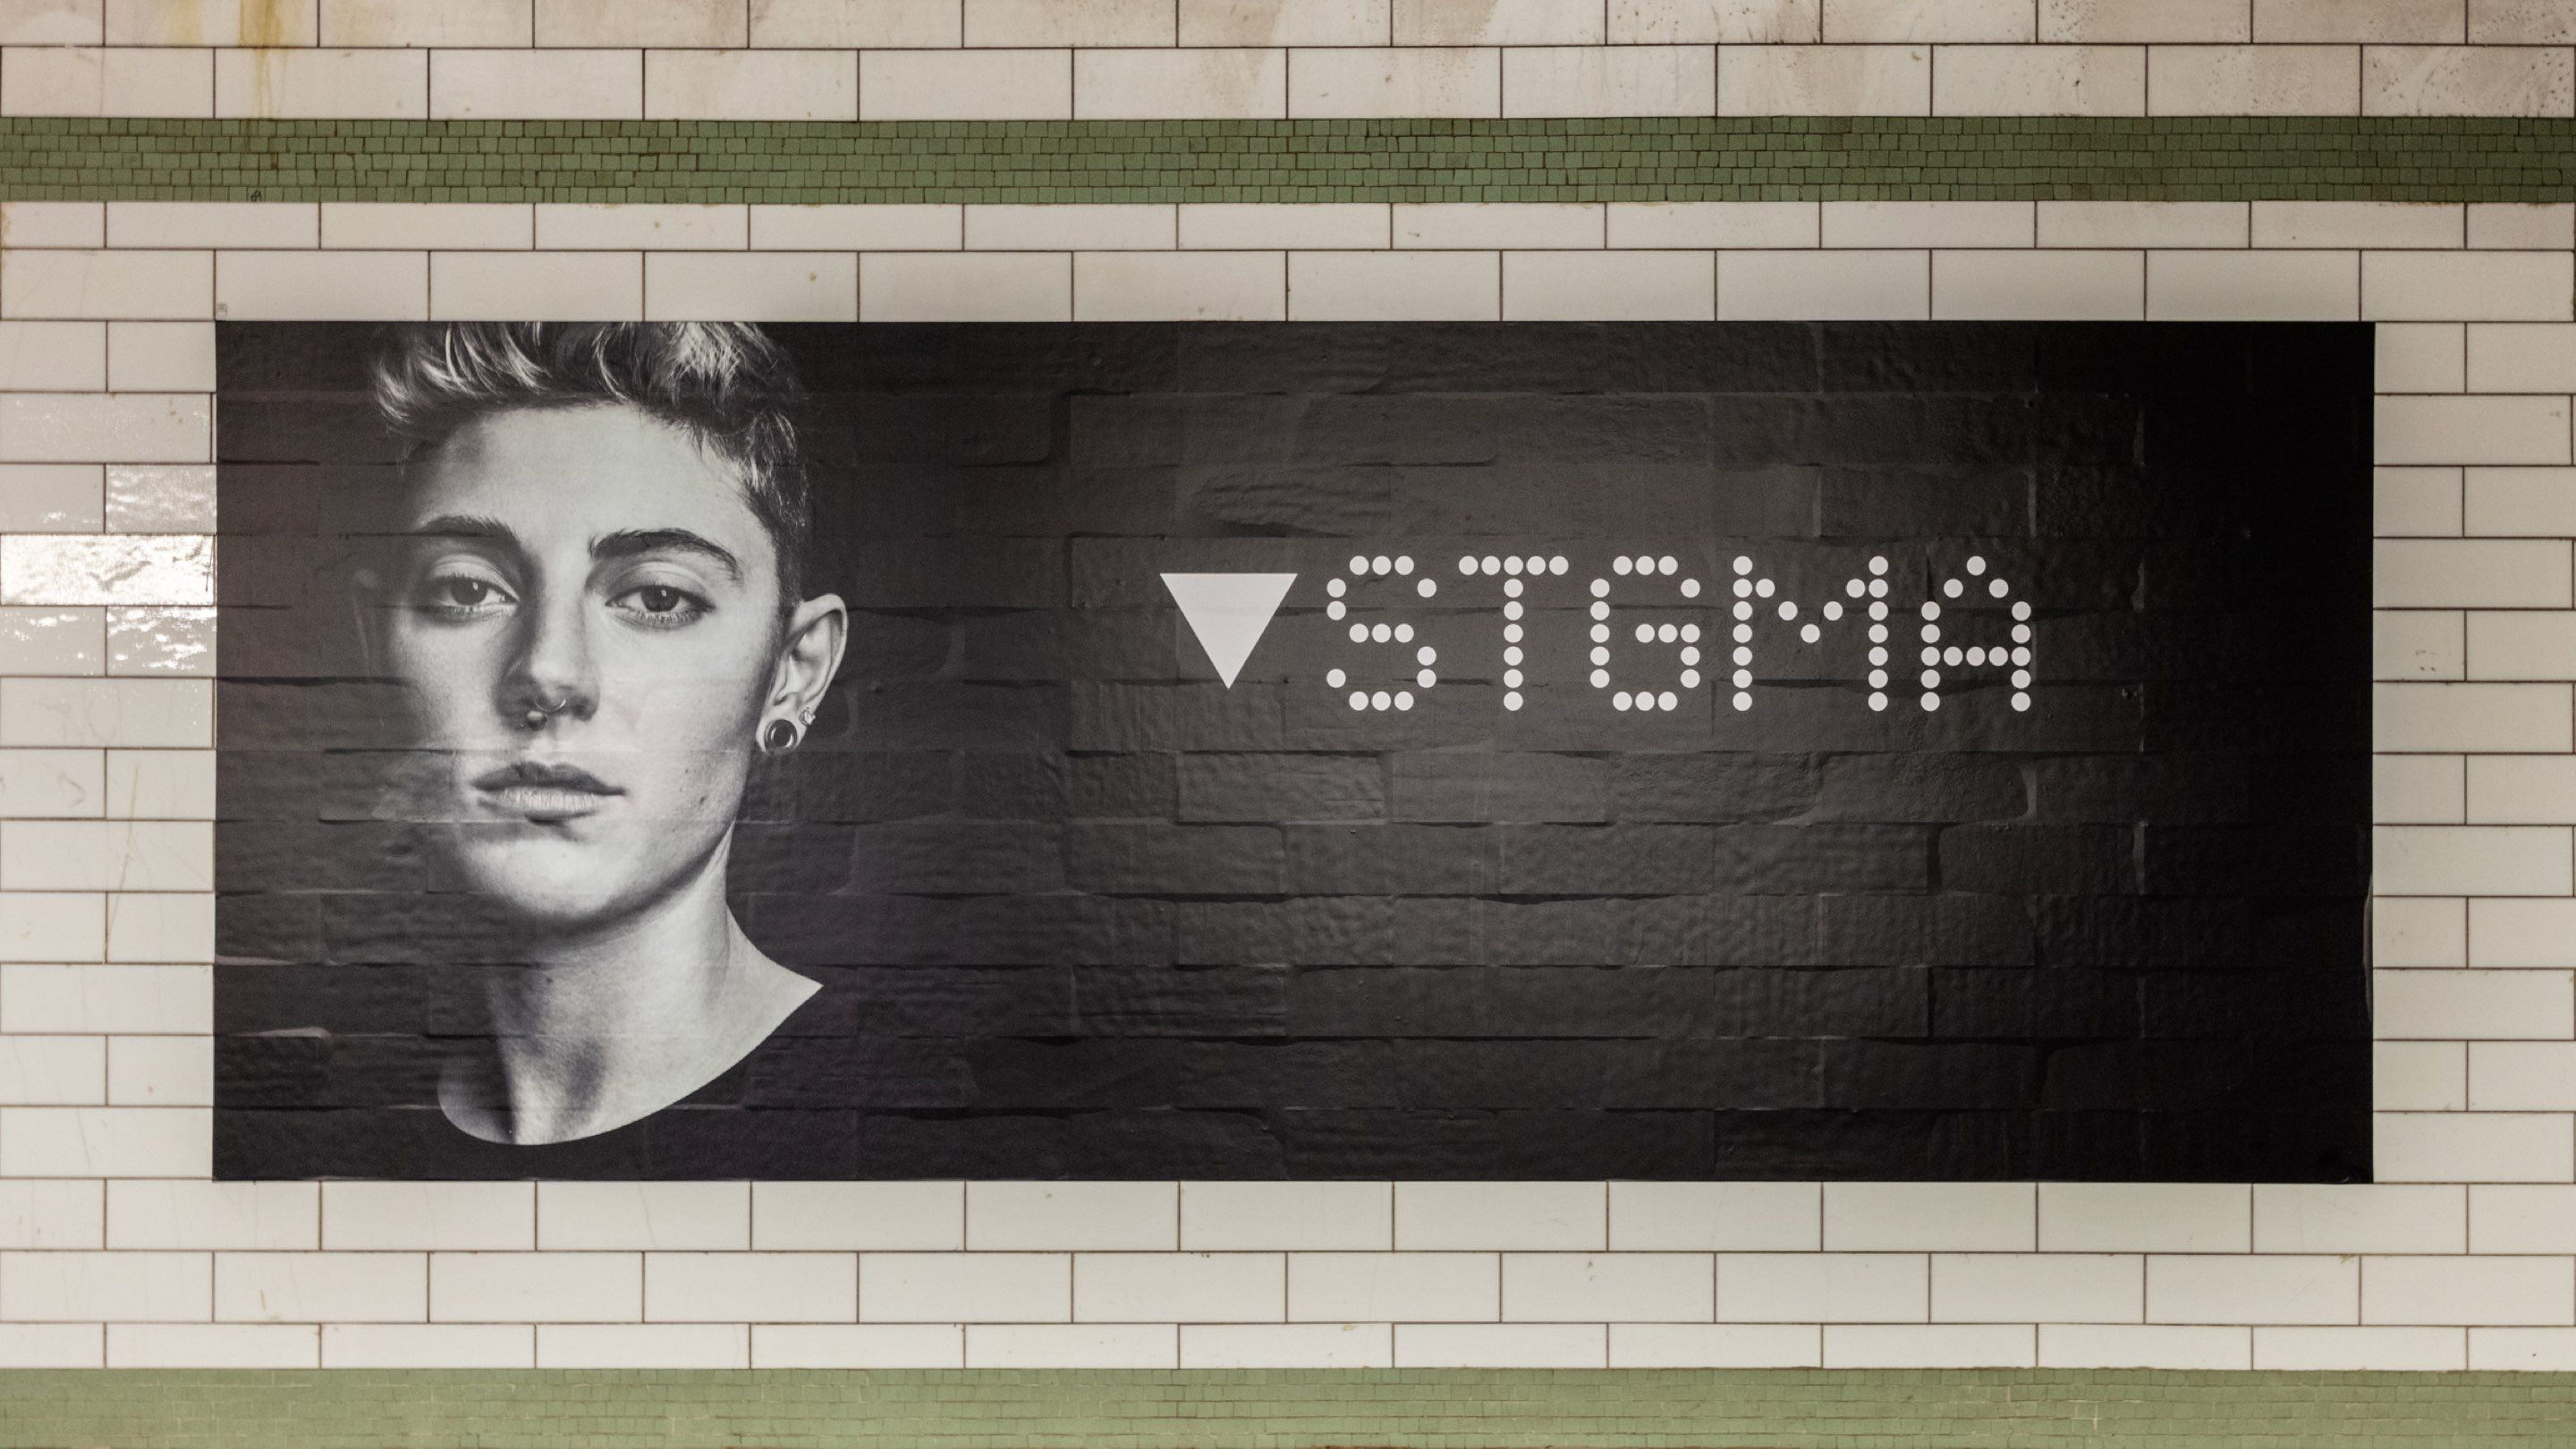 STGMA/Stigma subway poster for Impact Shares' WOMN campaign